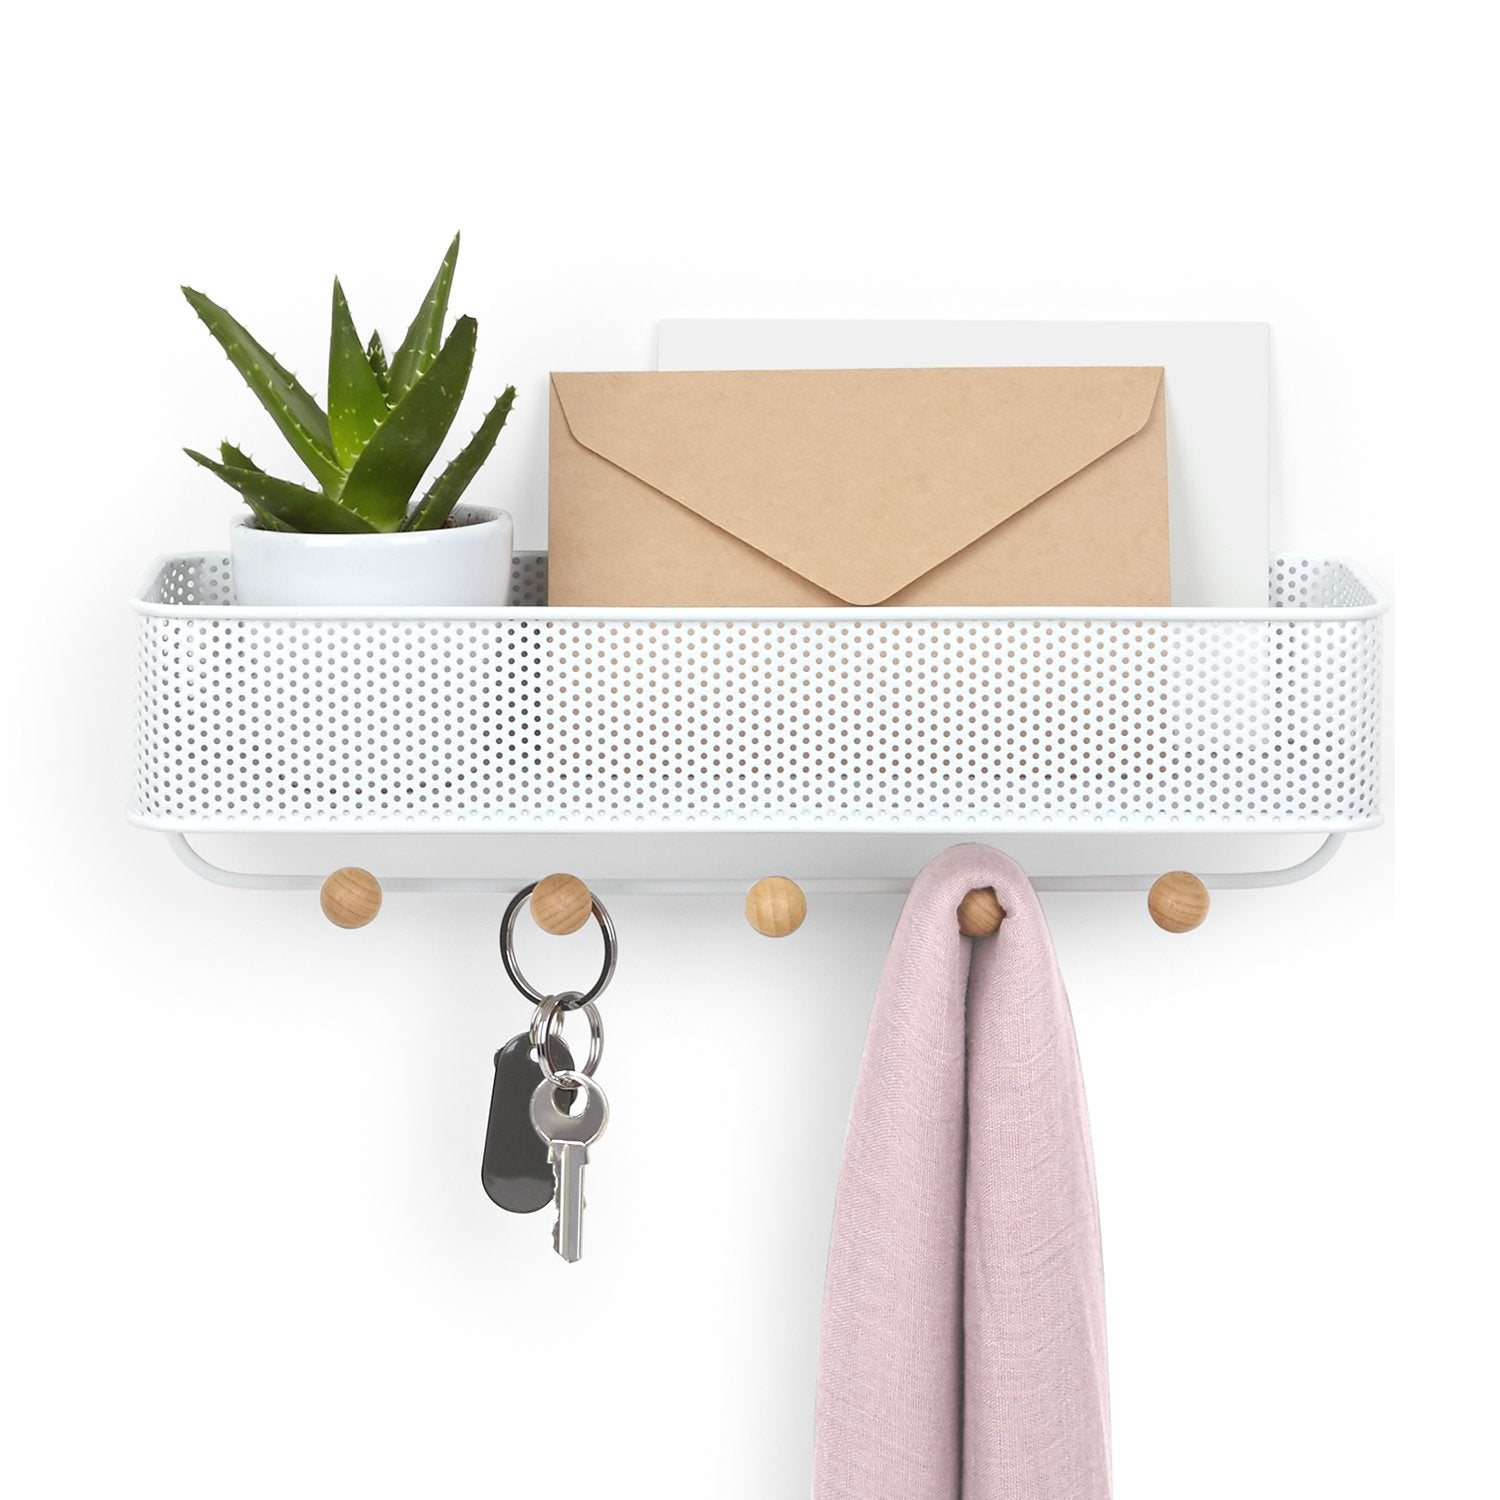 Umbra Estique Key Hook & Organizer